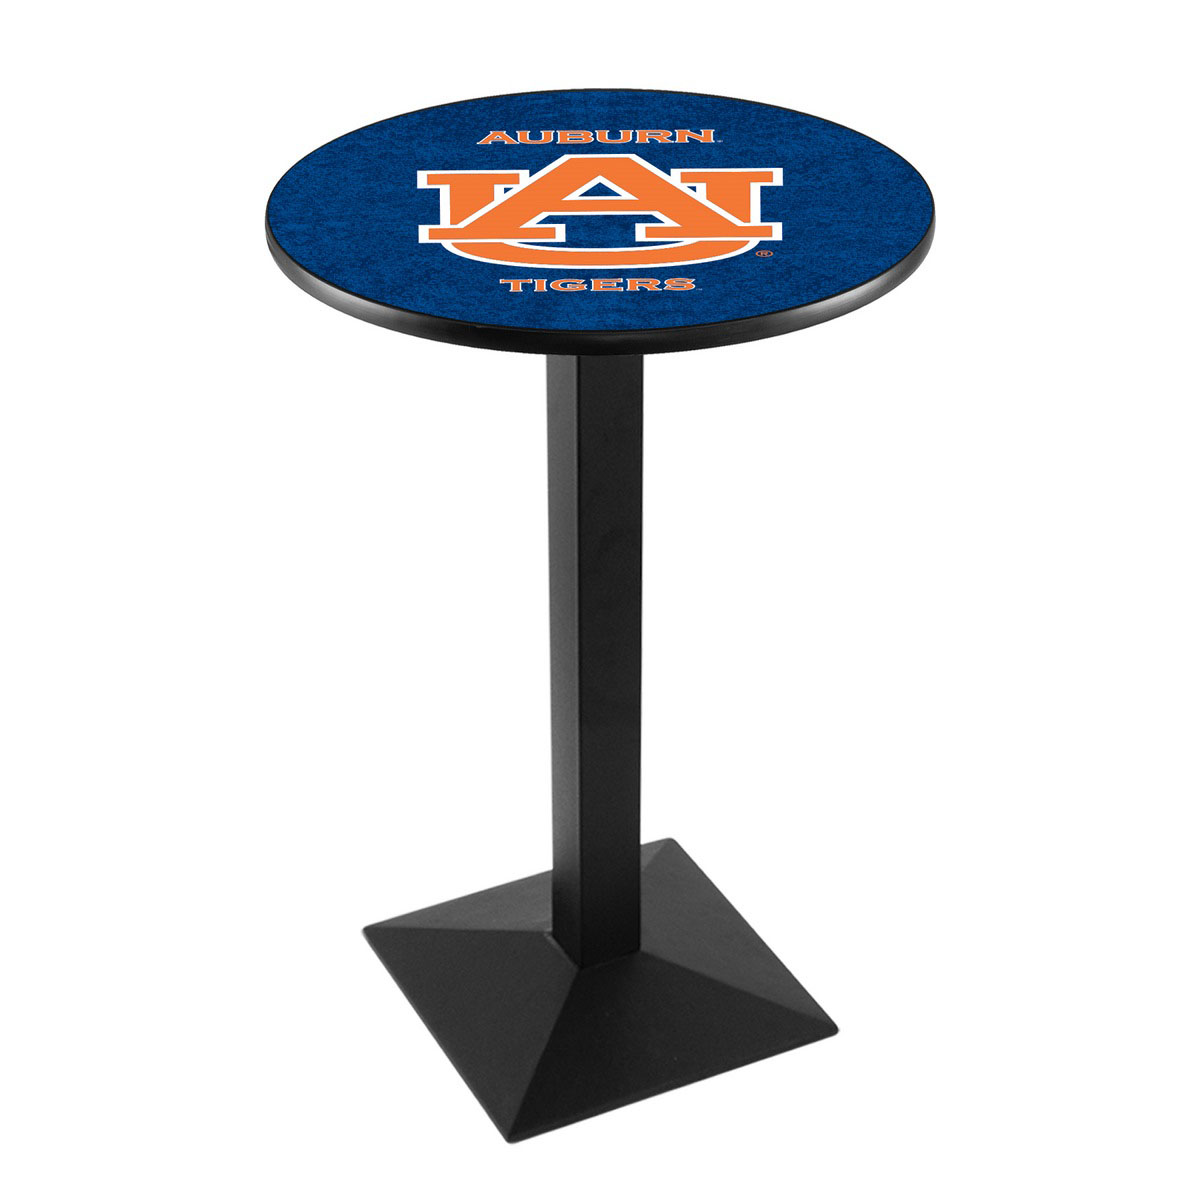 Check out the Auburn University Logo Pub Bar Table Square Stand Product Photo